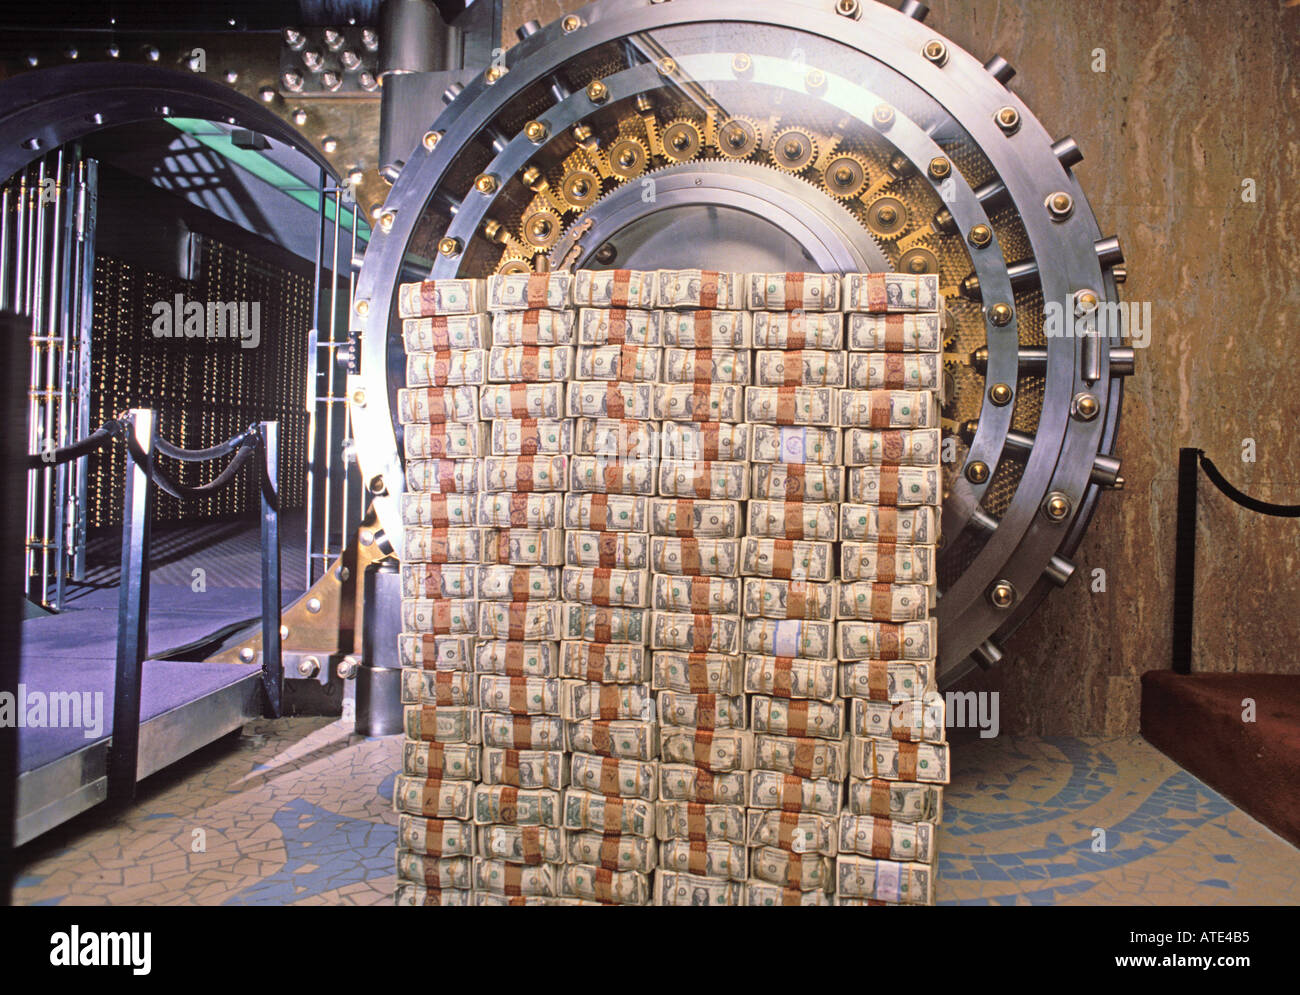 money stacked in front of a bank vault - Stock Image